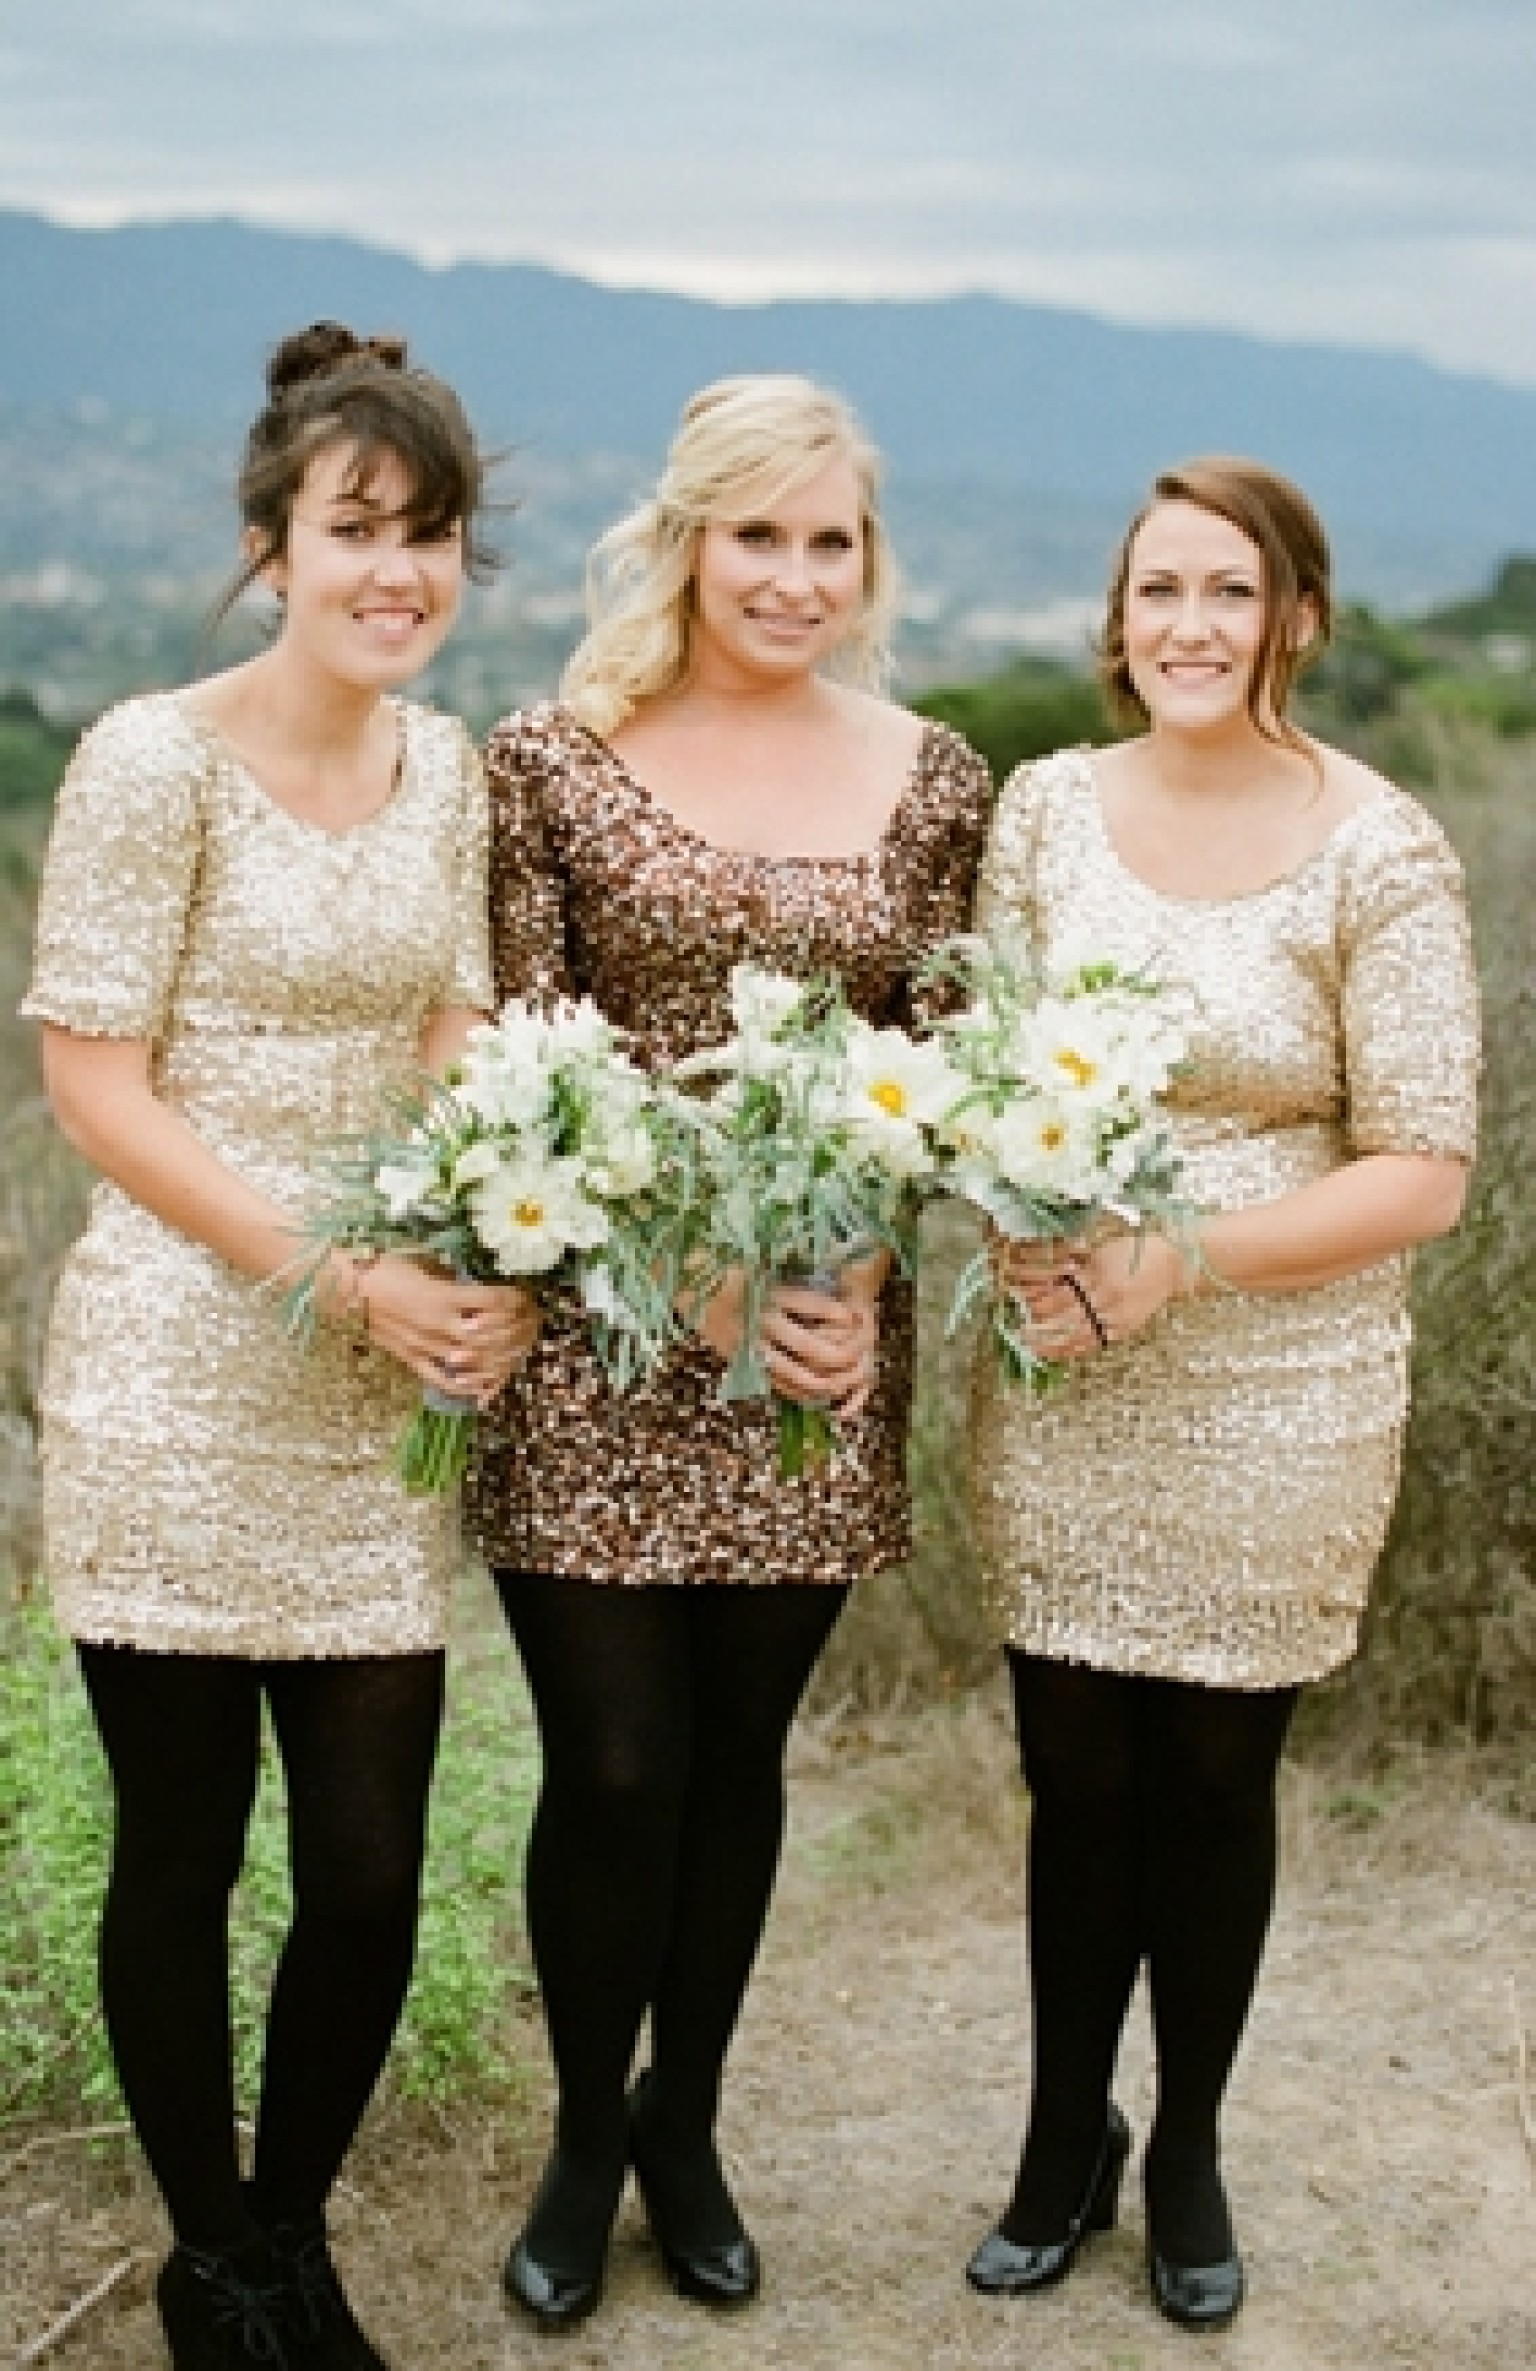 Riveting Sequined Bridesmaid Dresses Are Most New Trend Huffpost Sequined Bridesmaid Dresses Are Most New Trend Sequin Bridesmaid Dresses Sequin Bridesmaid Dresses Cheap wedding dress Sequin Bridesmaid Dresses